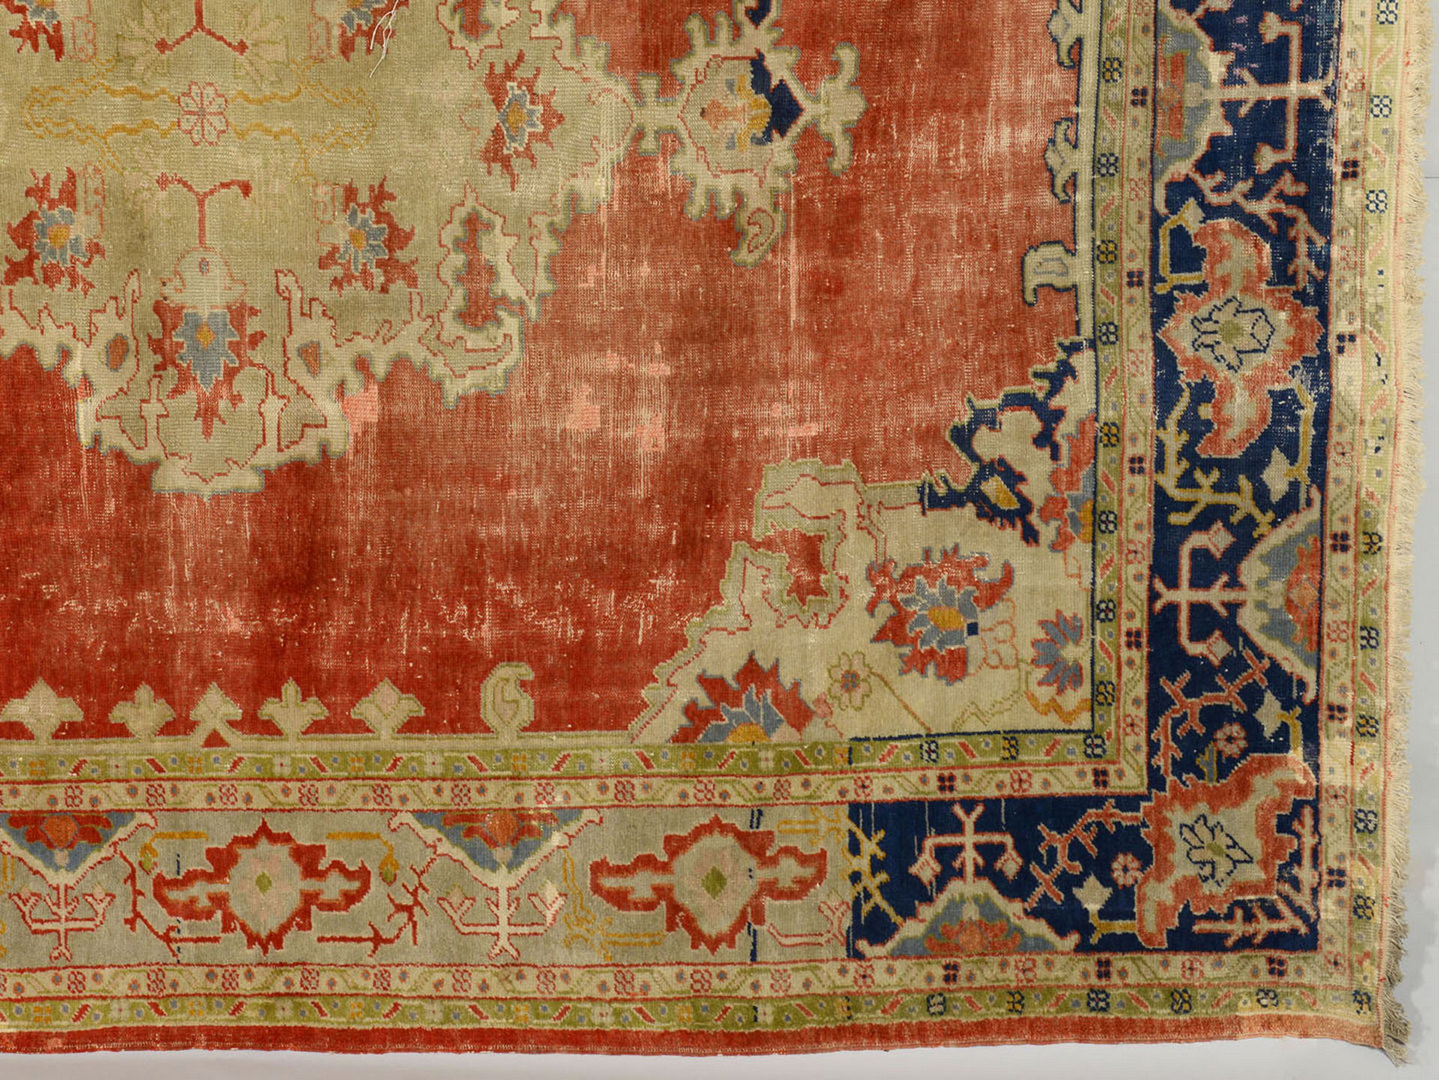 Lot 704: Semi-antique Turkish Ghiordes or Oushak Carpet